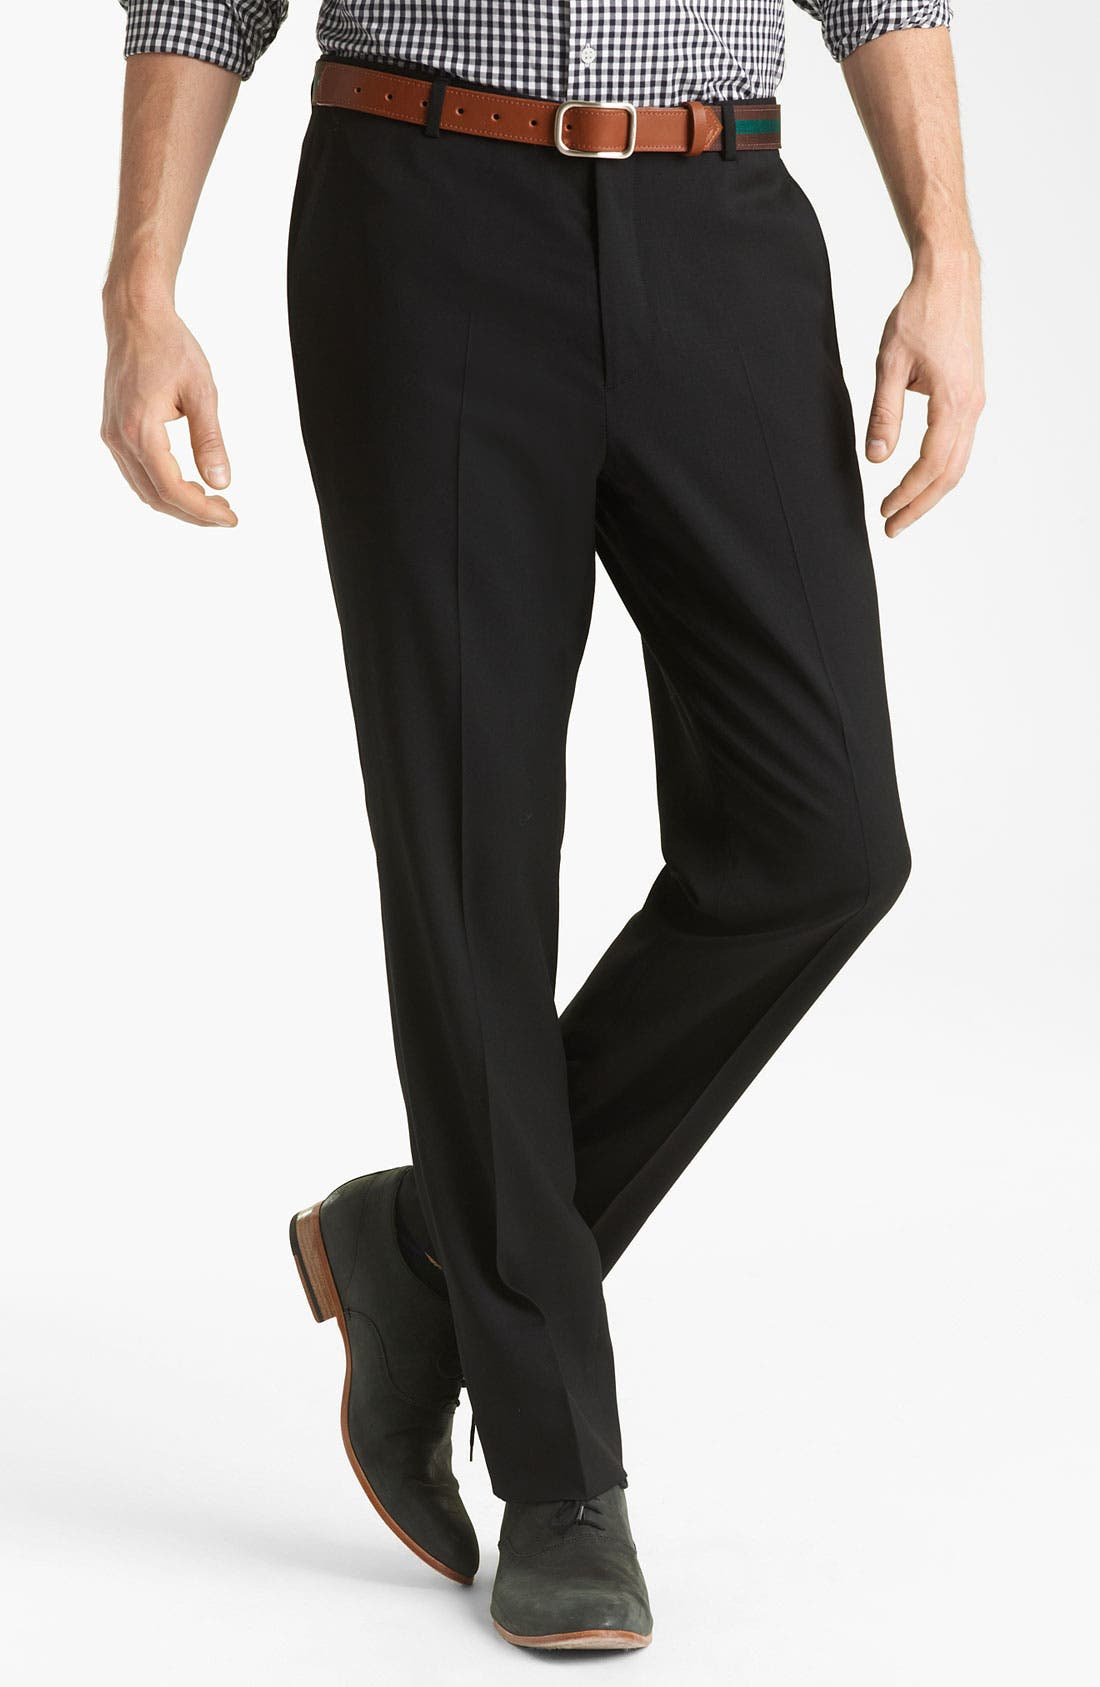 Main Image - Shipley & Halmos 'Grand Classic' Wool Trousers